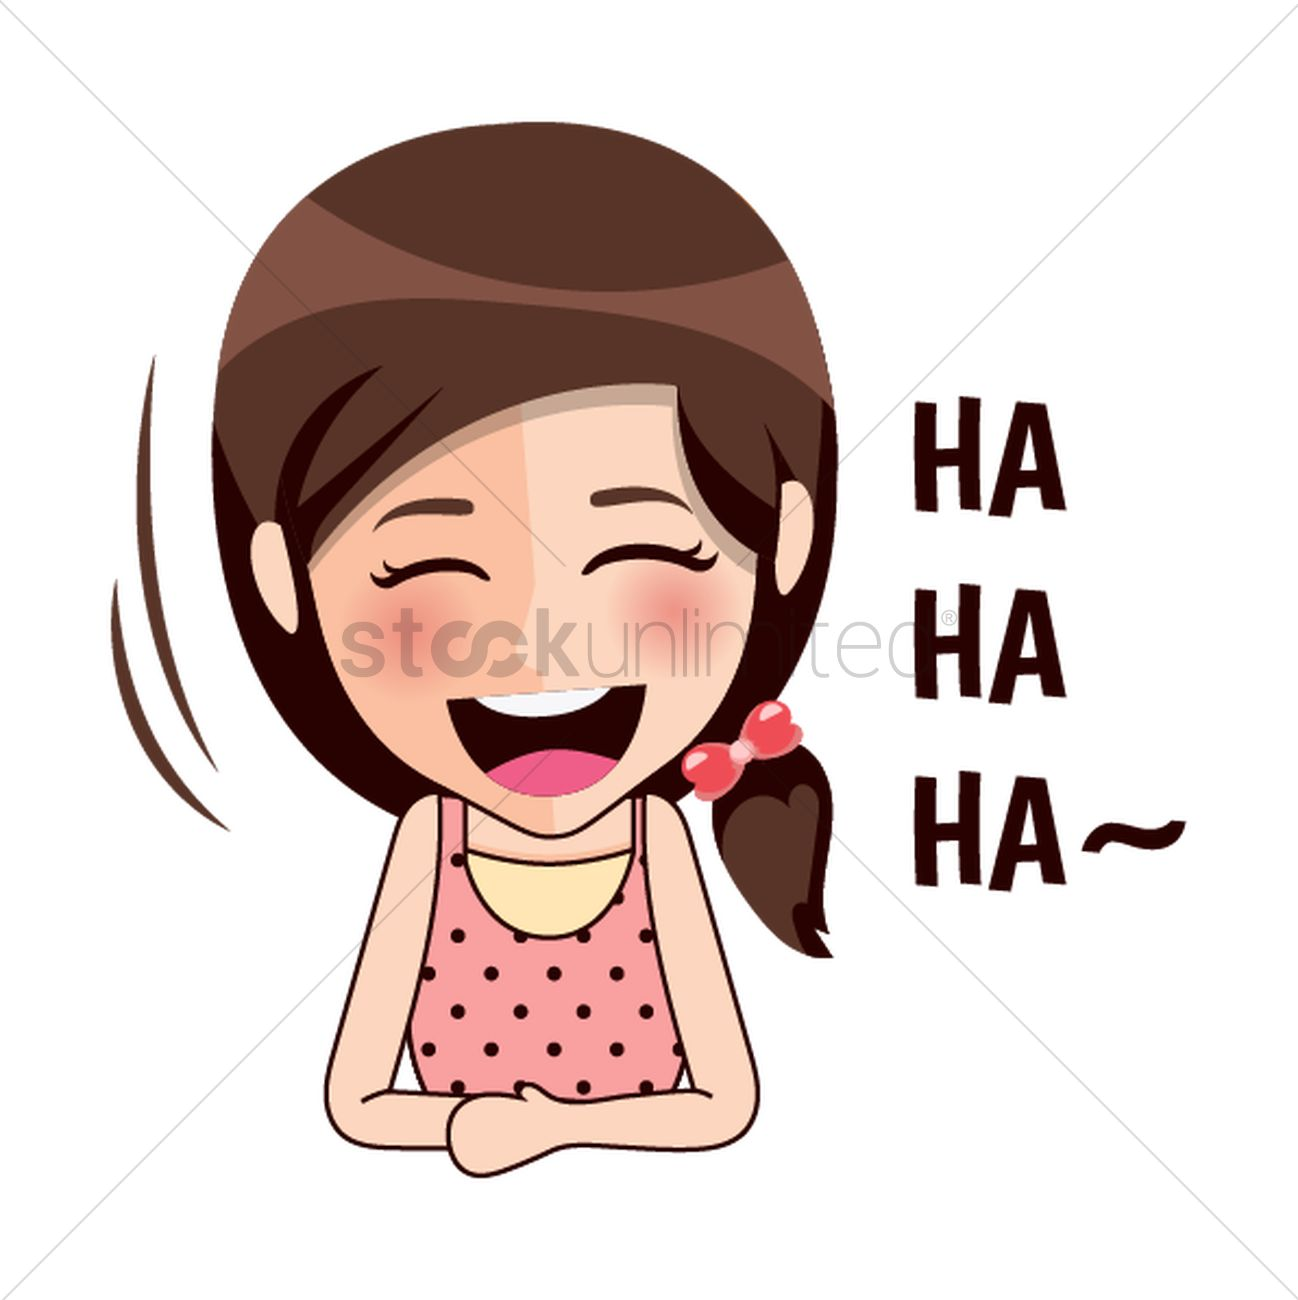 Laughing girl clipart svg black and white library Cartoon girl laughing Vector Image - 1957234 | StockUnlimited svg black and white library